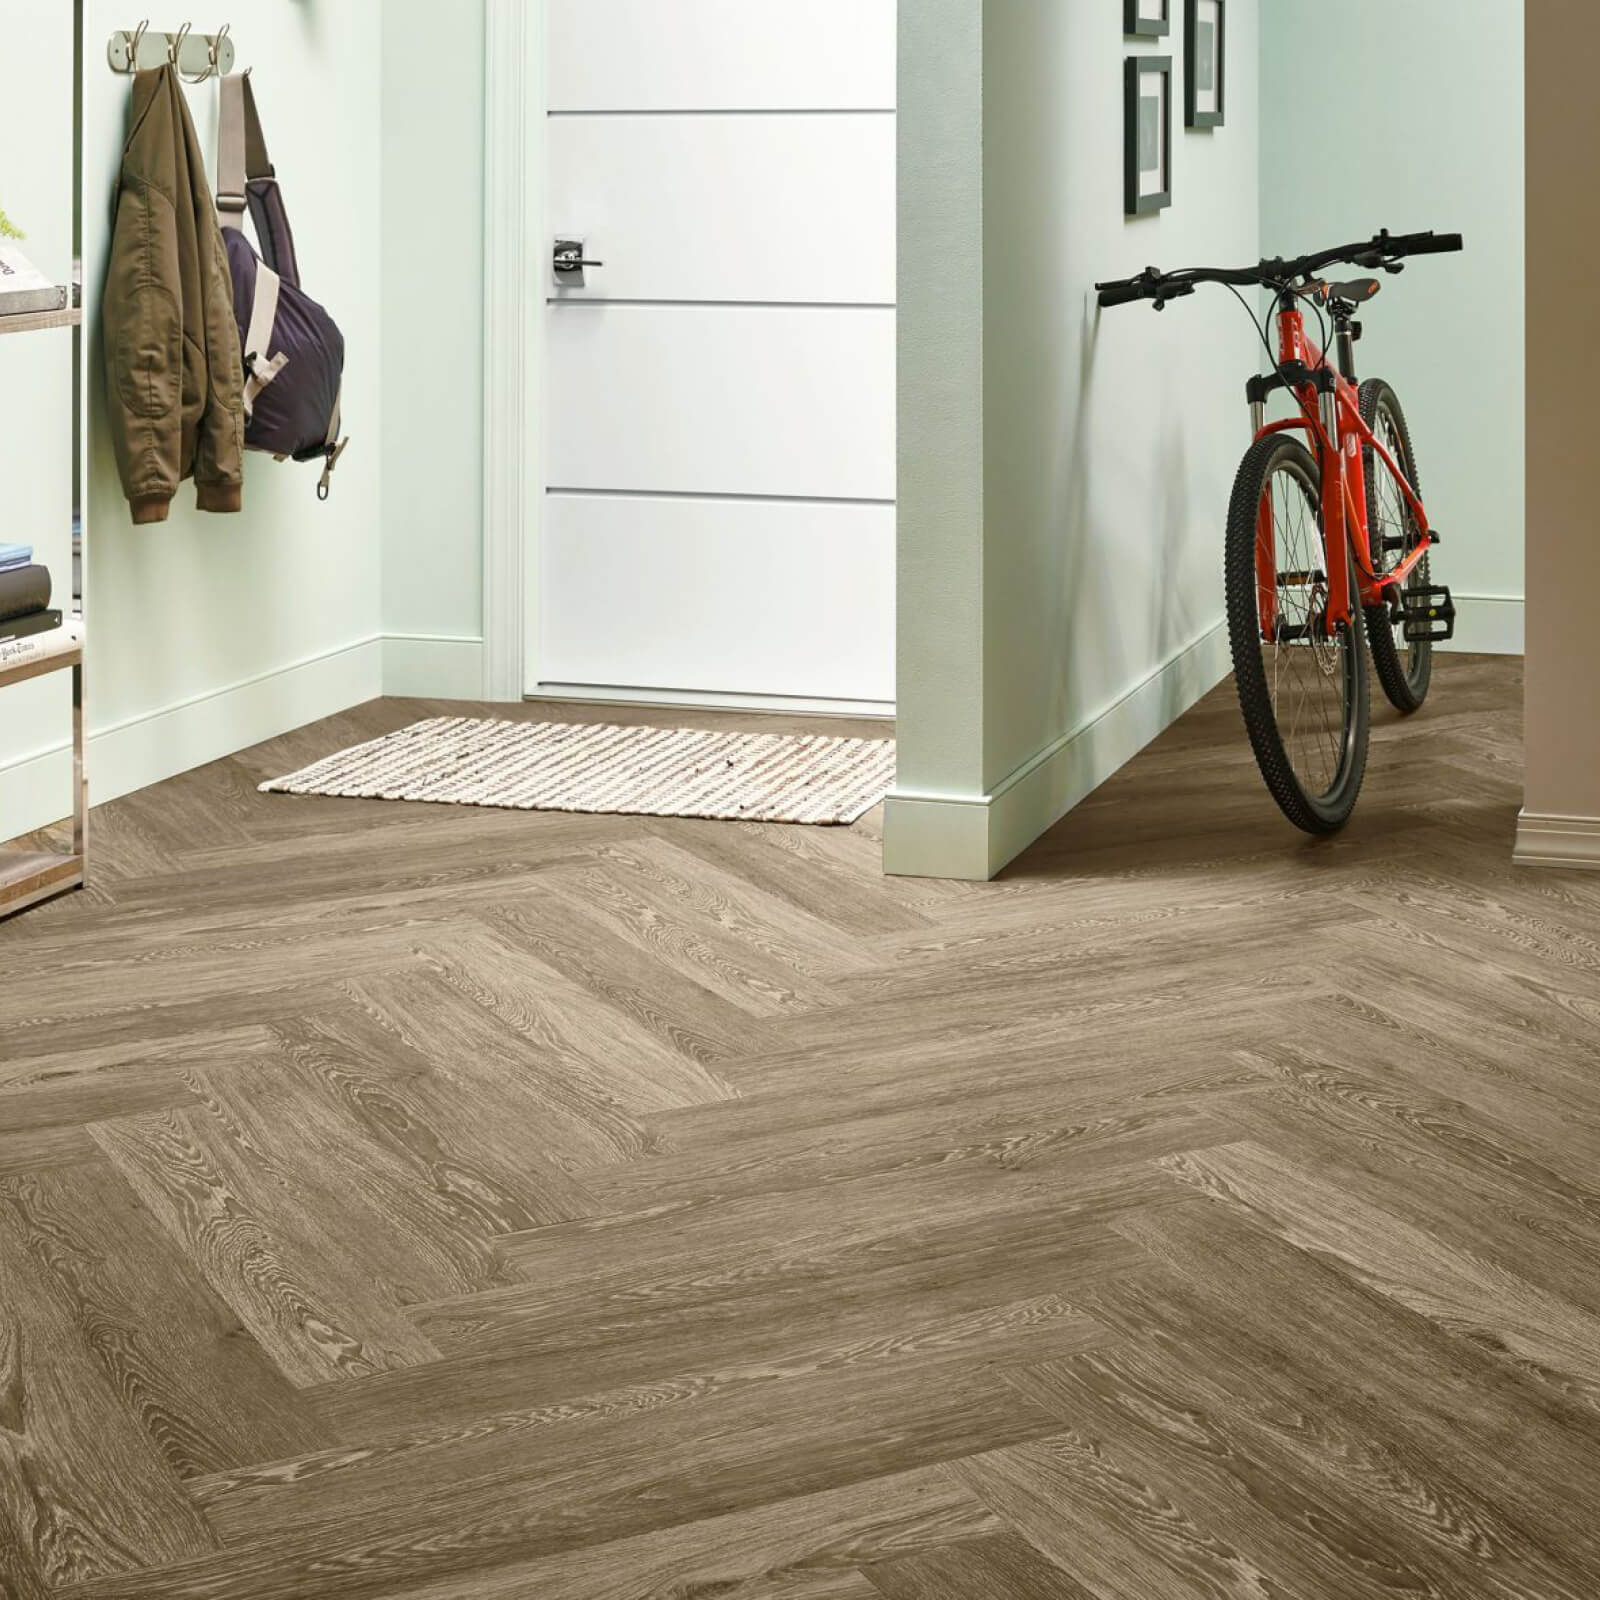 Bicycle on flooring | Staff Carpet